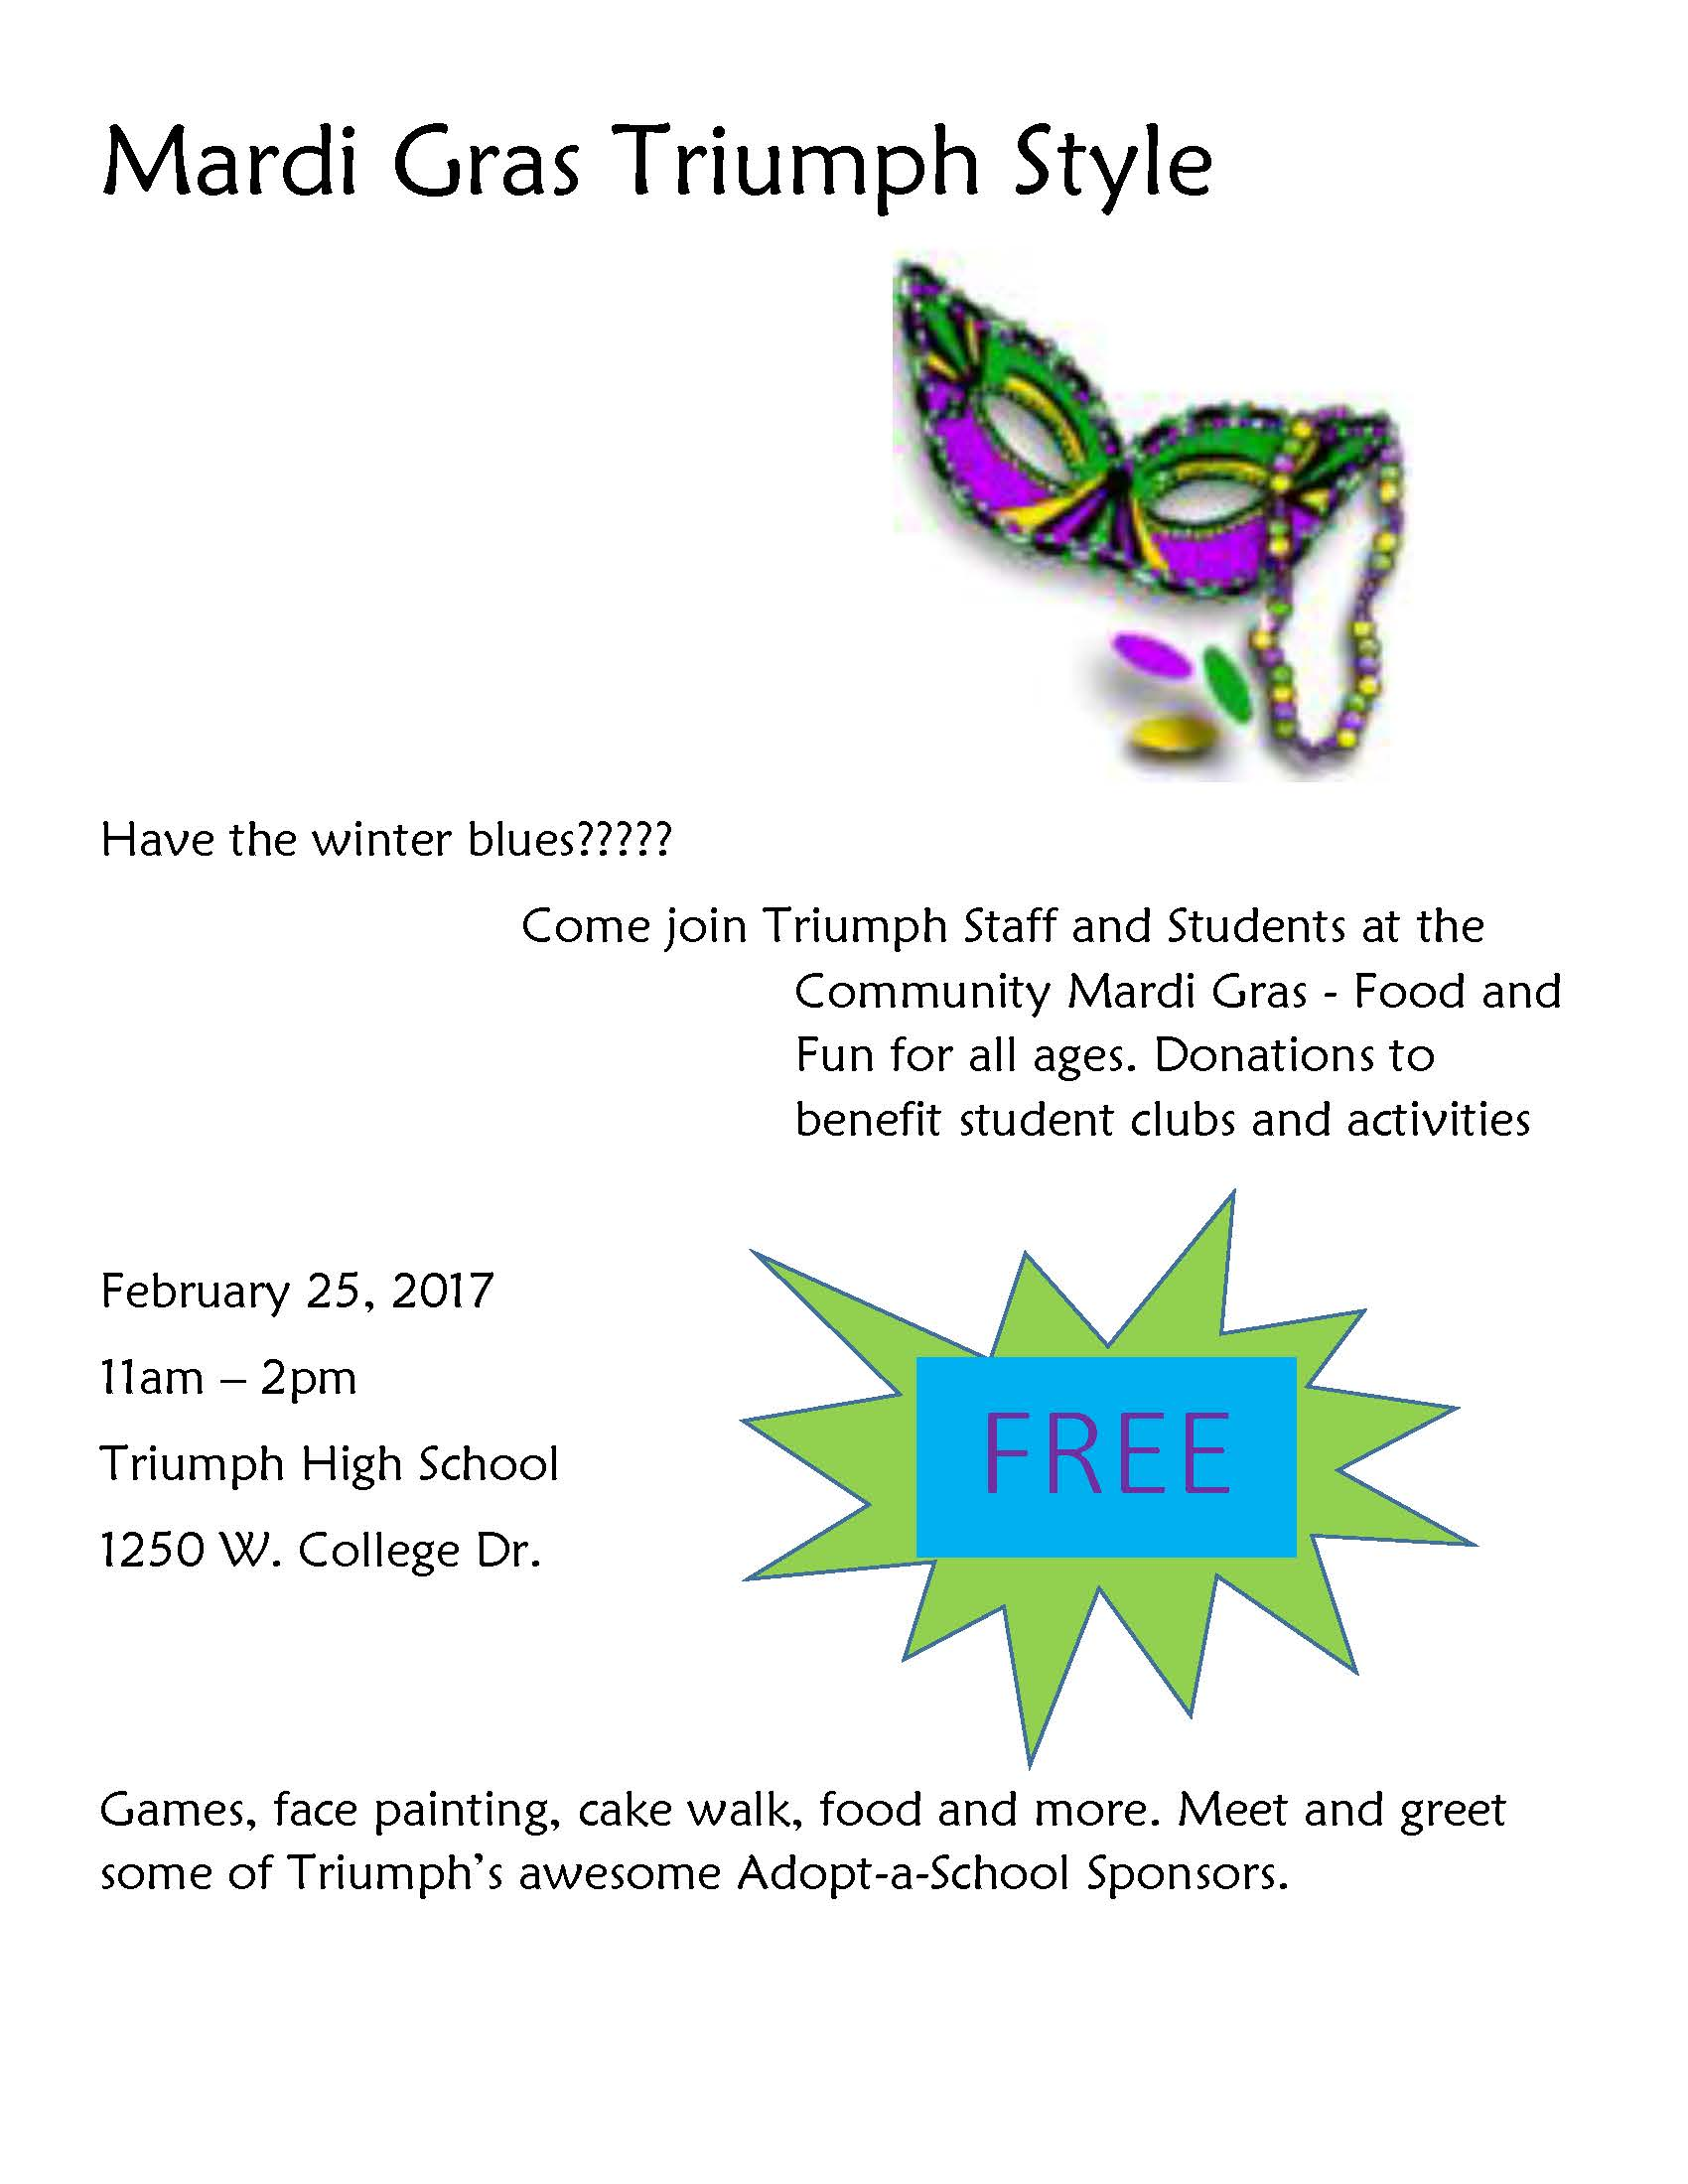 Mardi Gras Triump Style: Come join Triump Staff & Students at the Community Mardi Gras. Food & fun for all ages. Donations to benefit student clubs & activities. February 25, 2017, 11am-2pm, Triumph High School, 1250 W. College Drive. FREE. Games, face painting, cake walk, food & mor3. Meet & greet some of Triumph's awesome Adopt-a-School Sponsors.